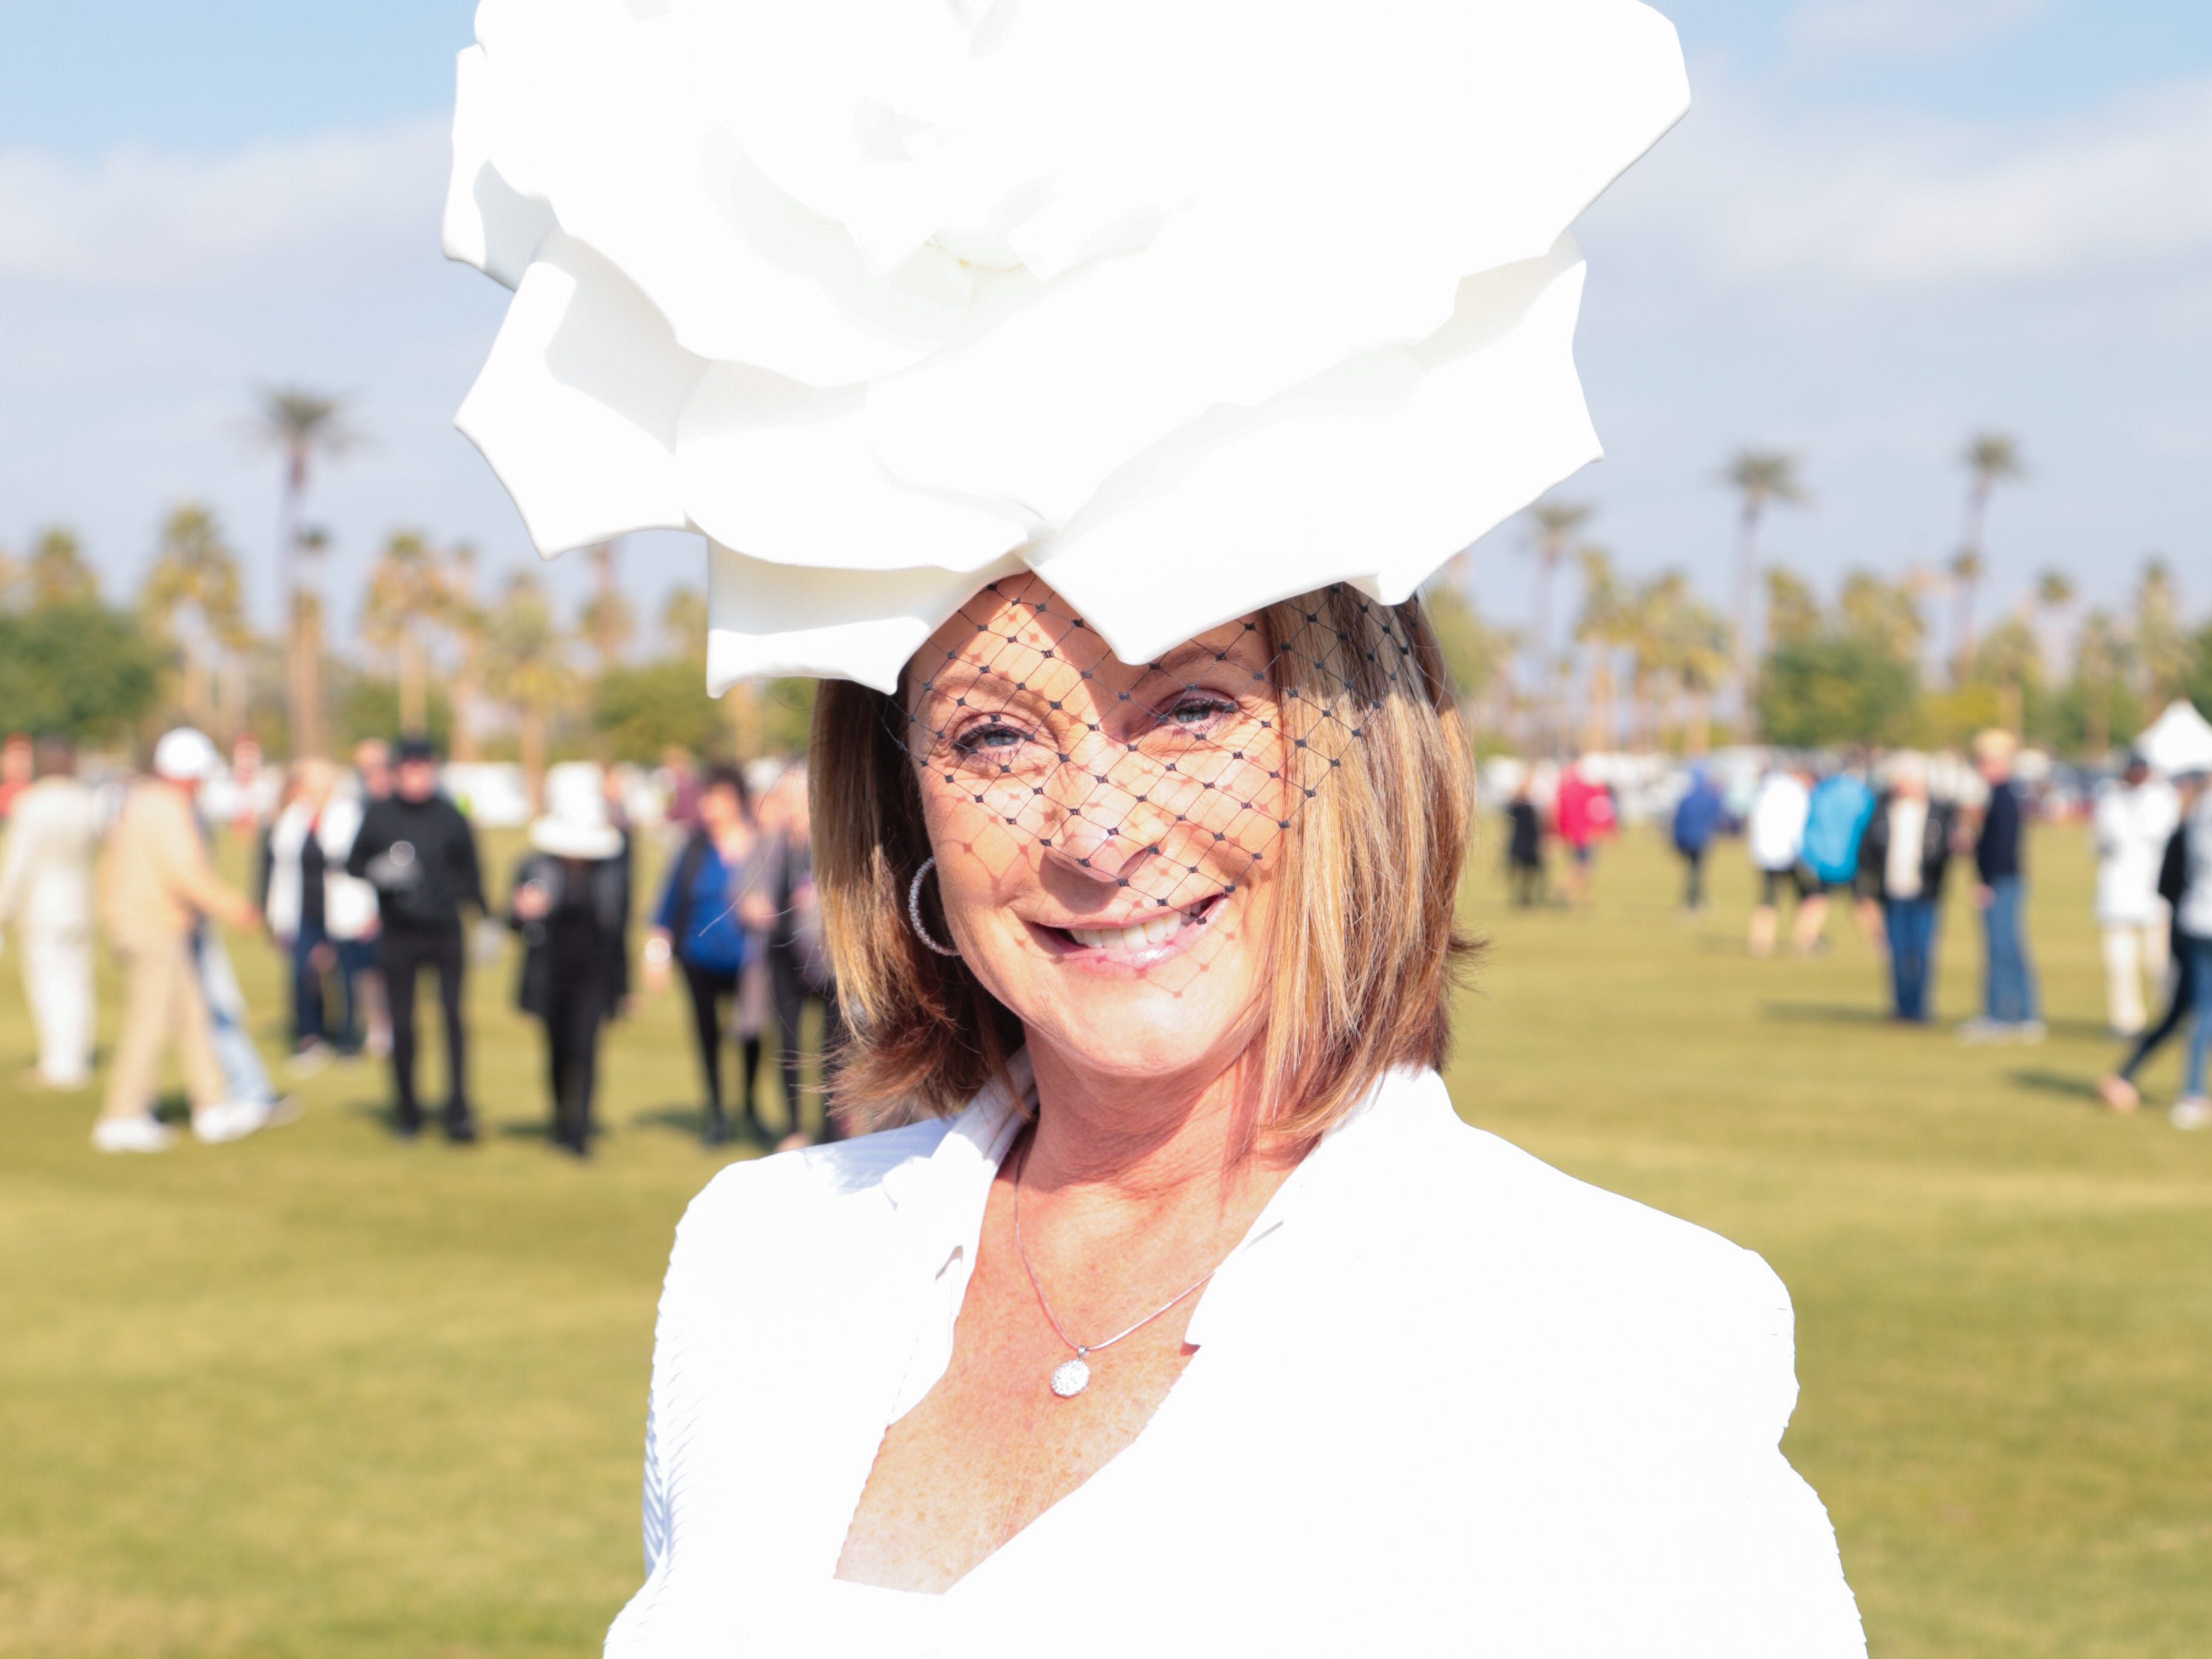 Suzanne Young wears a festive hat for opening day at the Empire Polo Club, Indio, Calif., Sunday, January 6, 2018.